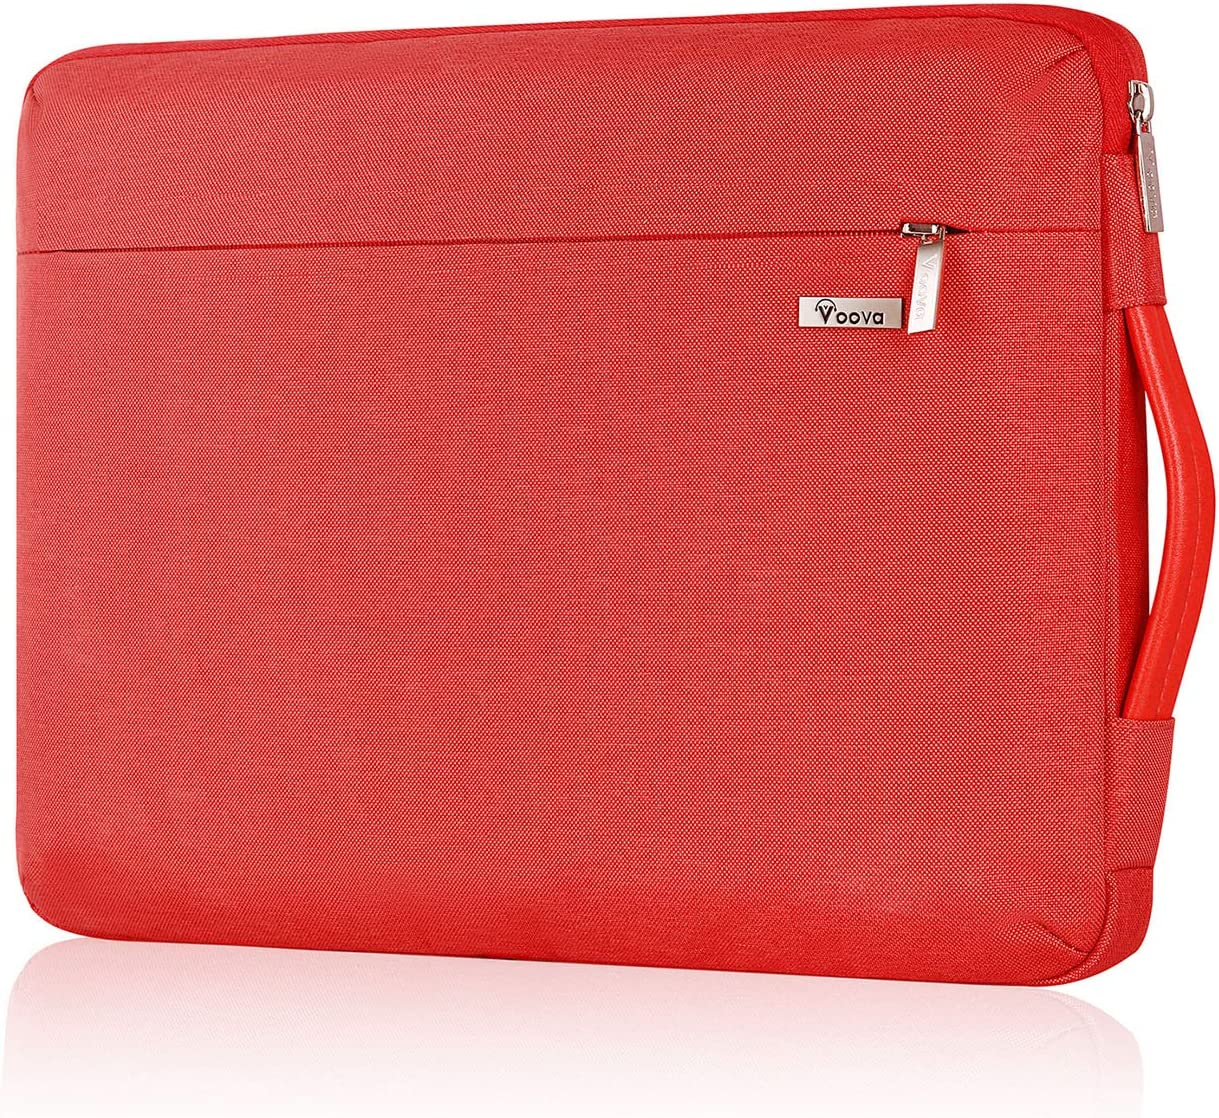 Voova Laptop Sleeve Case 14 15 15.6 Inch,Upgrade 360° Protective Computer Carrying Cover Bag Compatible with Macbook Pro 15 16 2019, Surface Book 3/2,Hp Acer Asus Chromebook for Women Girls,Waterproof